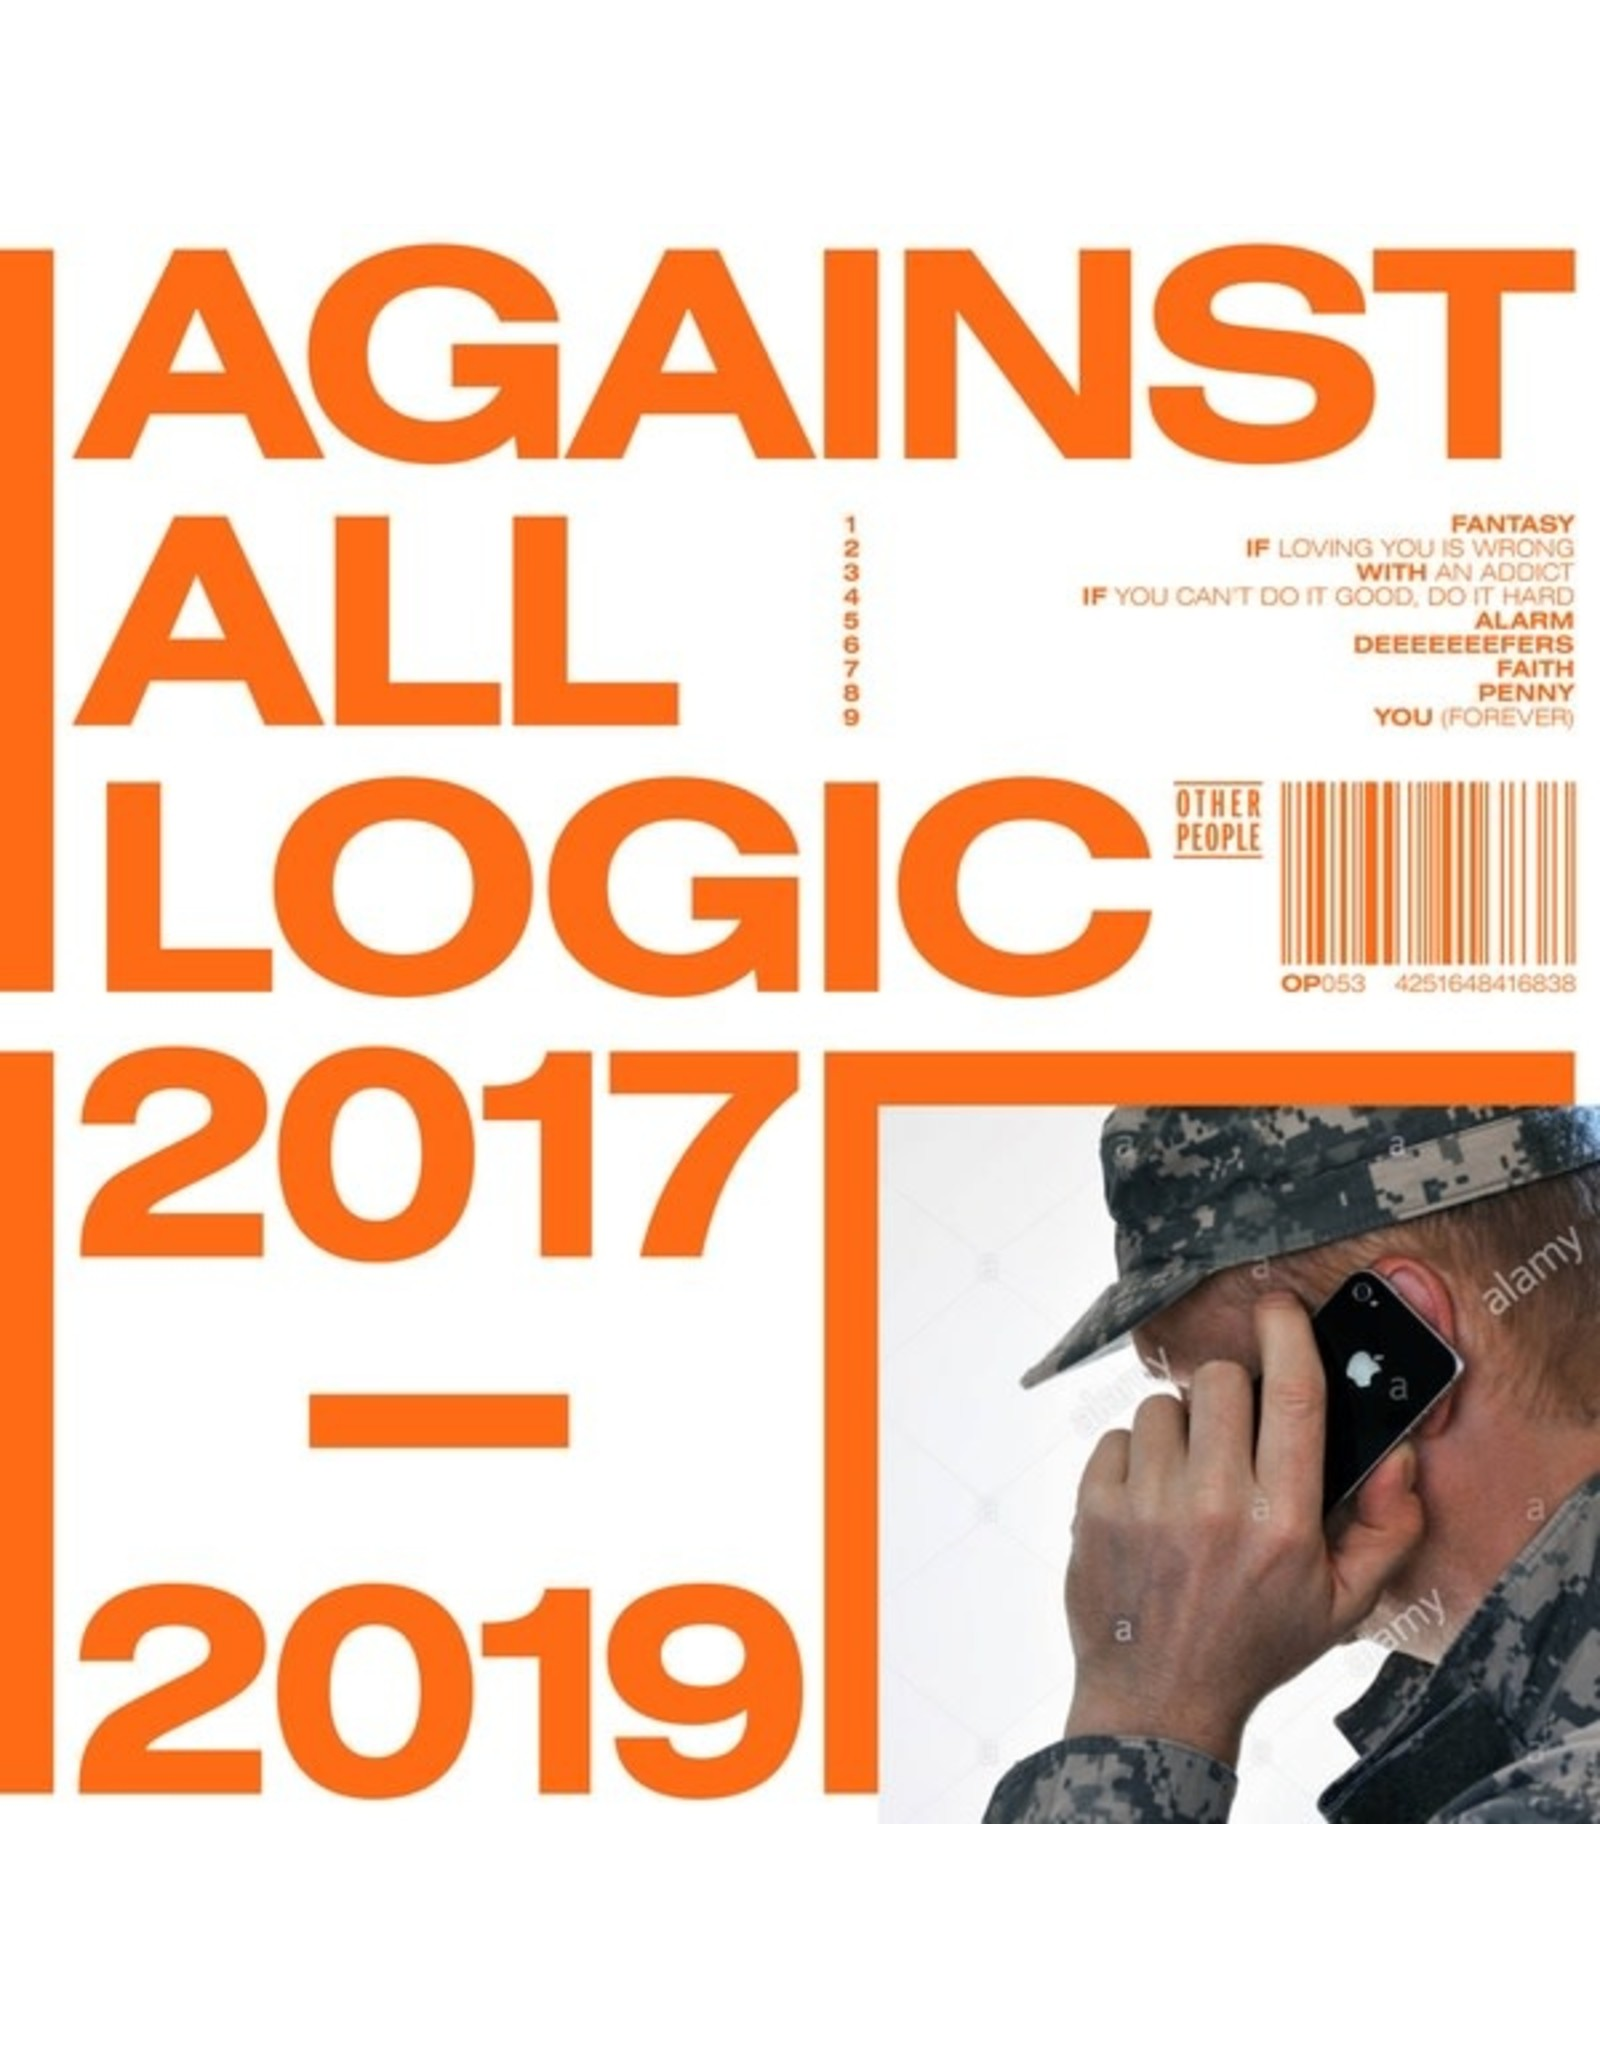 Other People Against All Logic: 2017-19 3LP